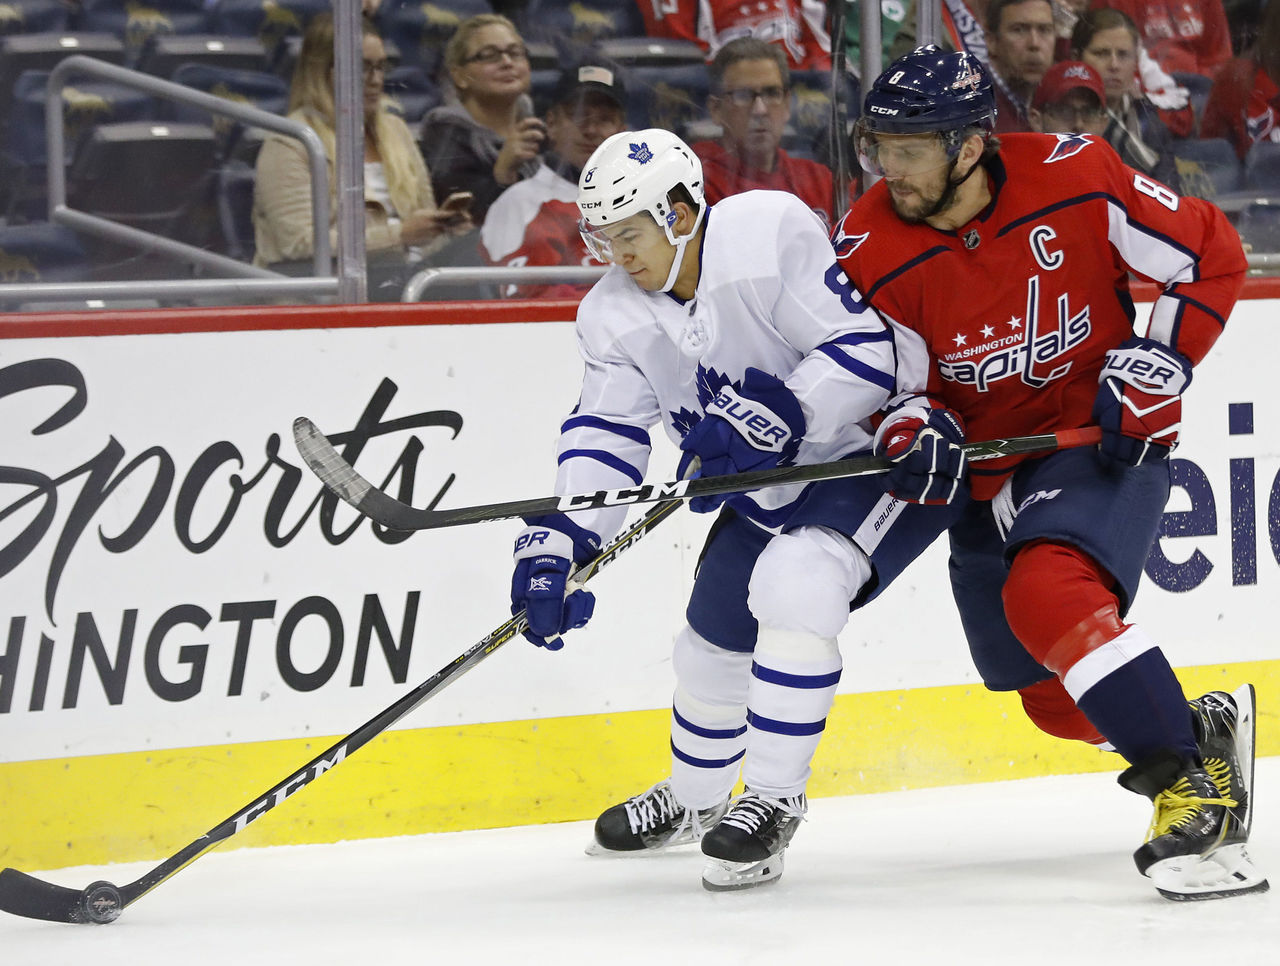 Cropped 2017 10 17t235449z 1423293079 nocid rtrmadp 3 nhl toronto maple leafs at washington capitals